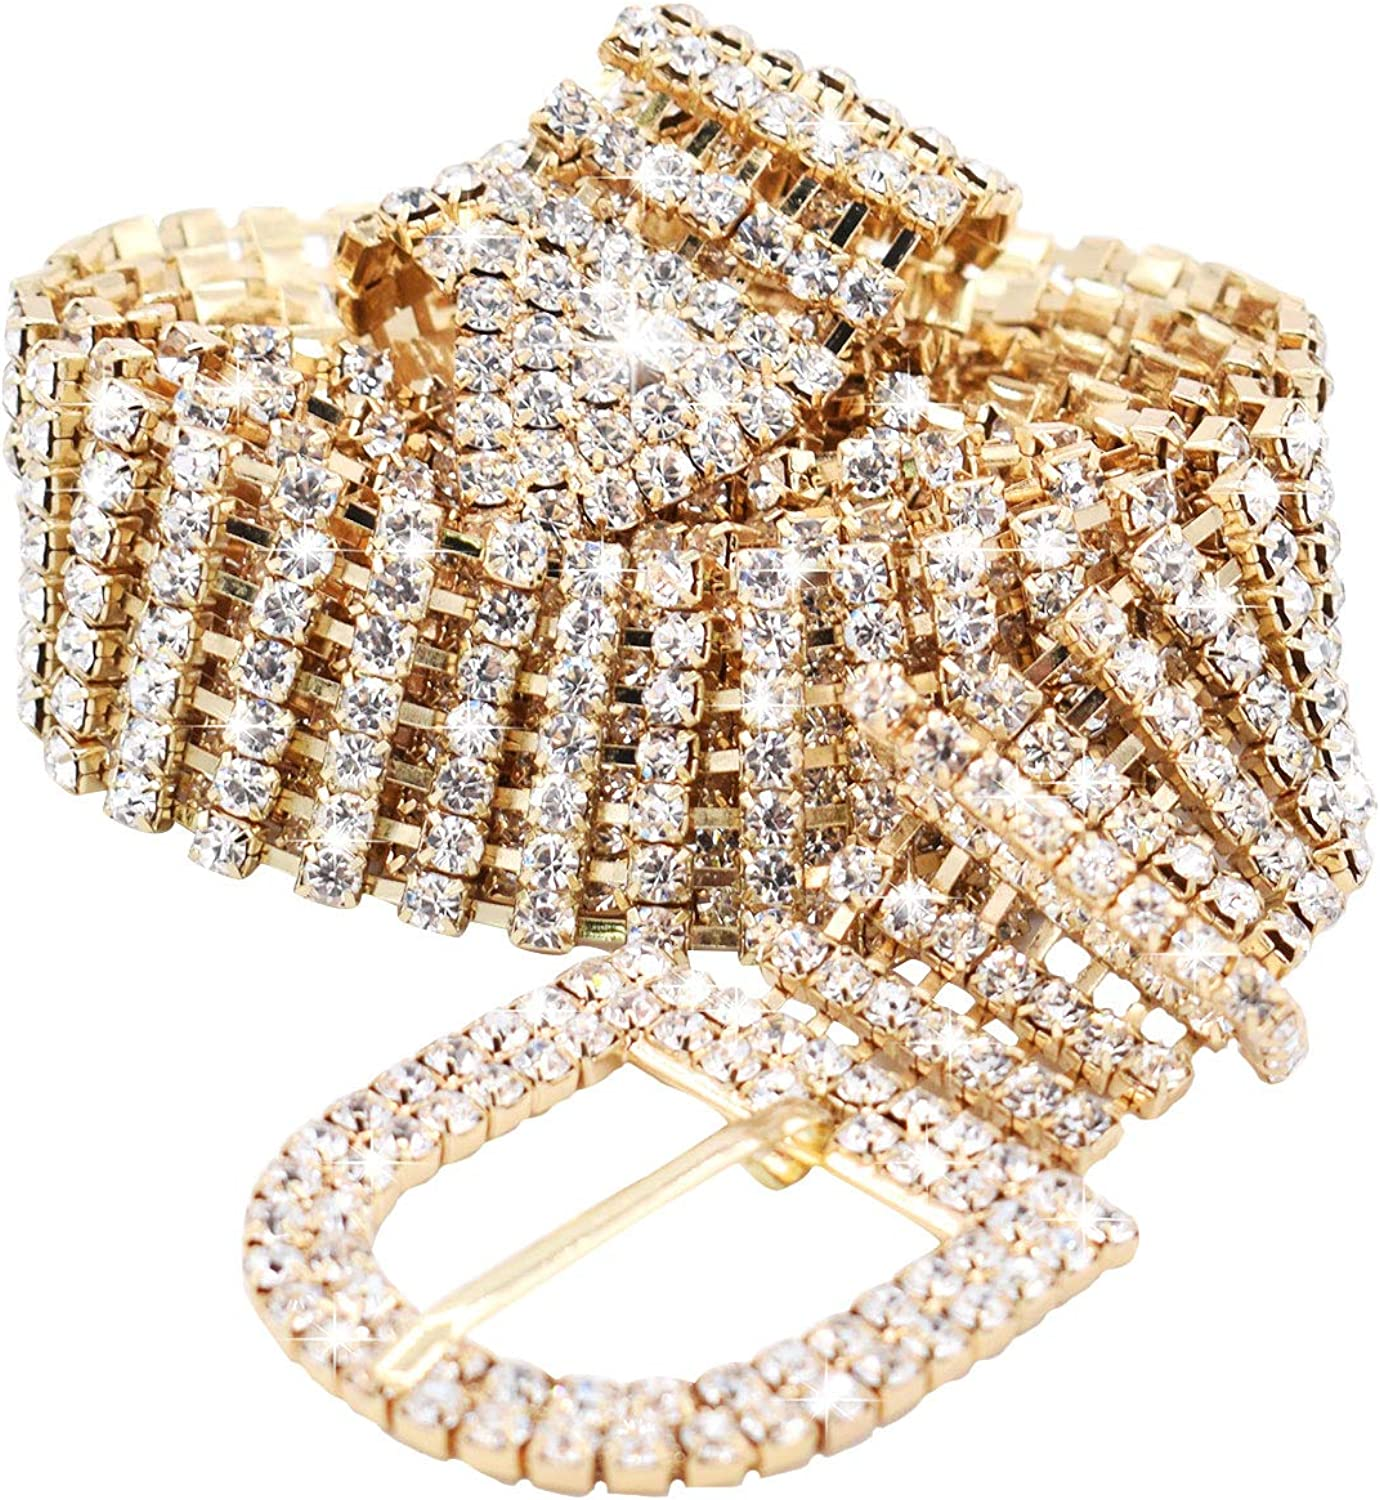 Shiny Rhinestone Belt for Women Girls with D-Buckle Waist Chain for Jeans Dress